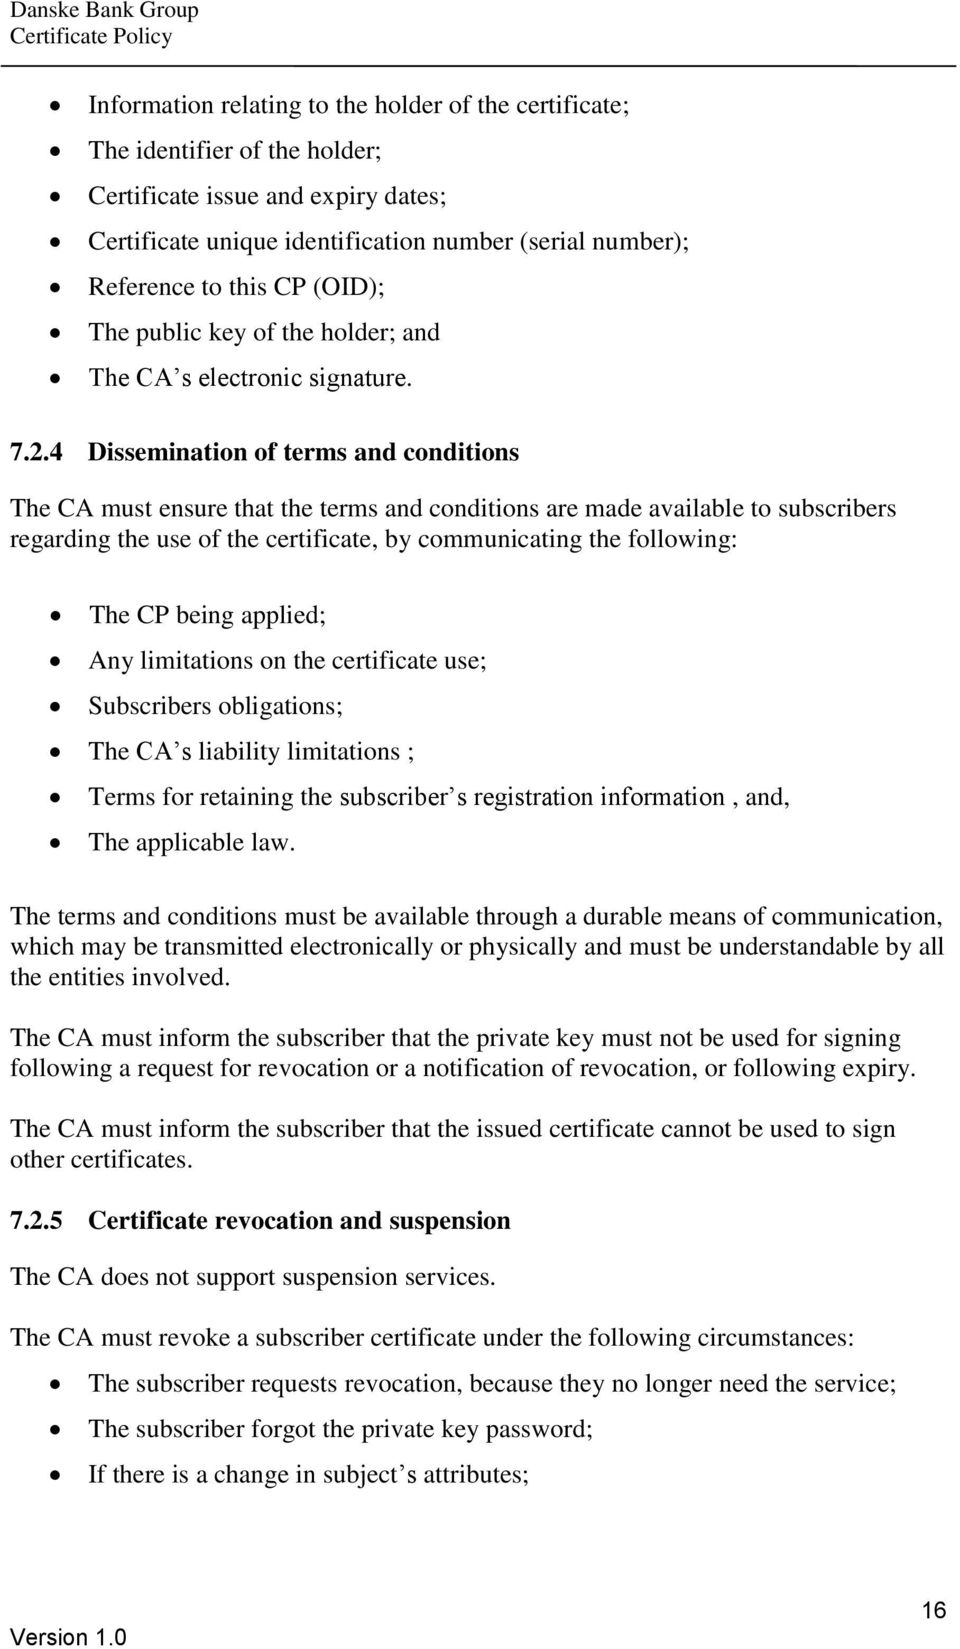 4 Dissemination of terms and conditions The CA must ensure that the terms and conditions are made available to subscribers regarding the use of the certificate, by communicating the following: The CP